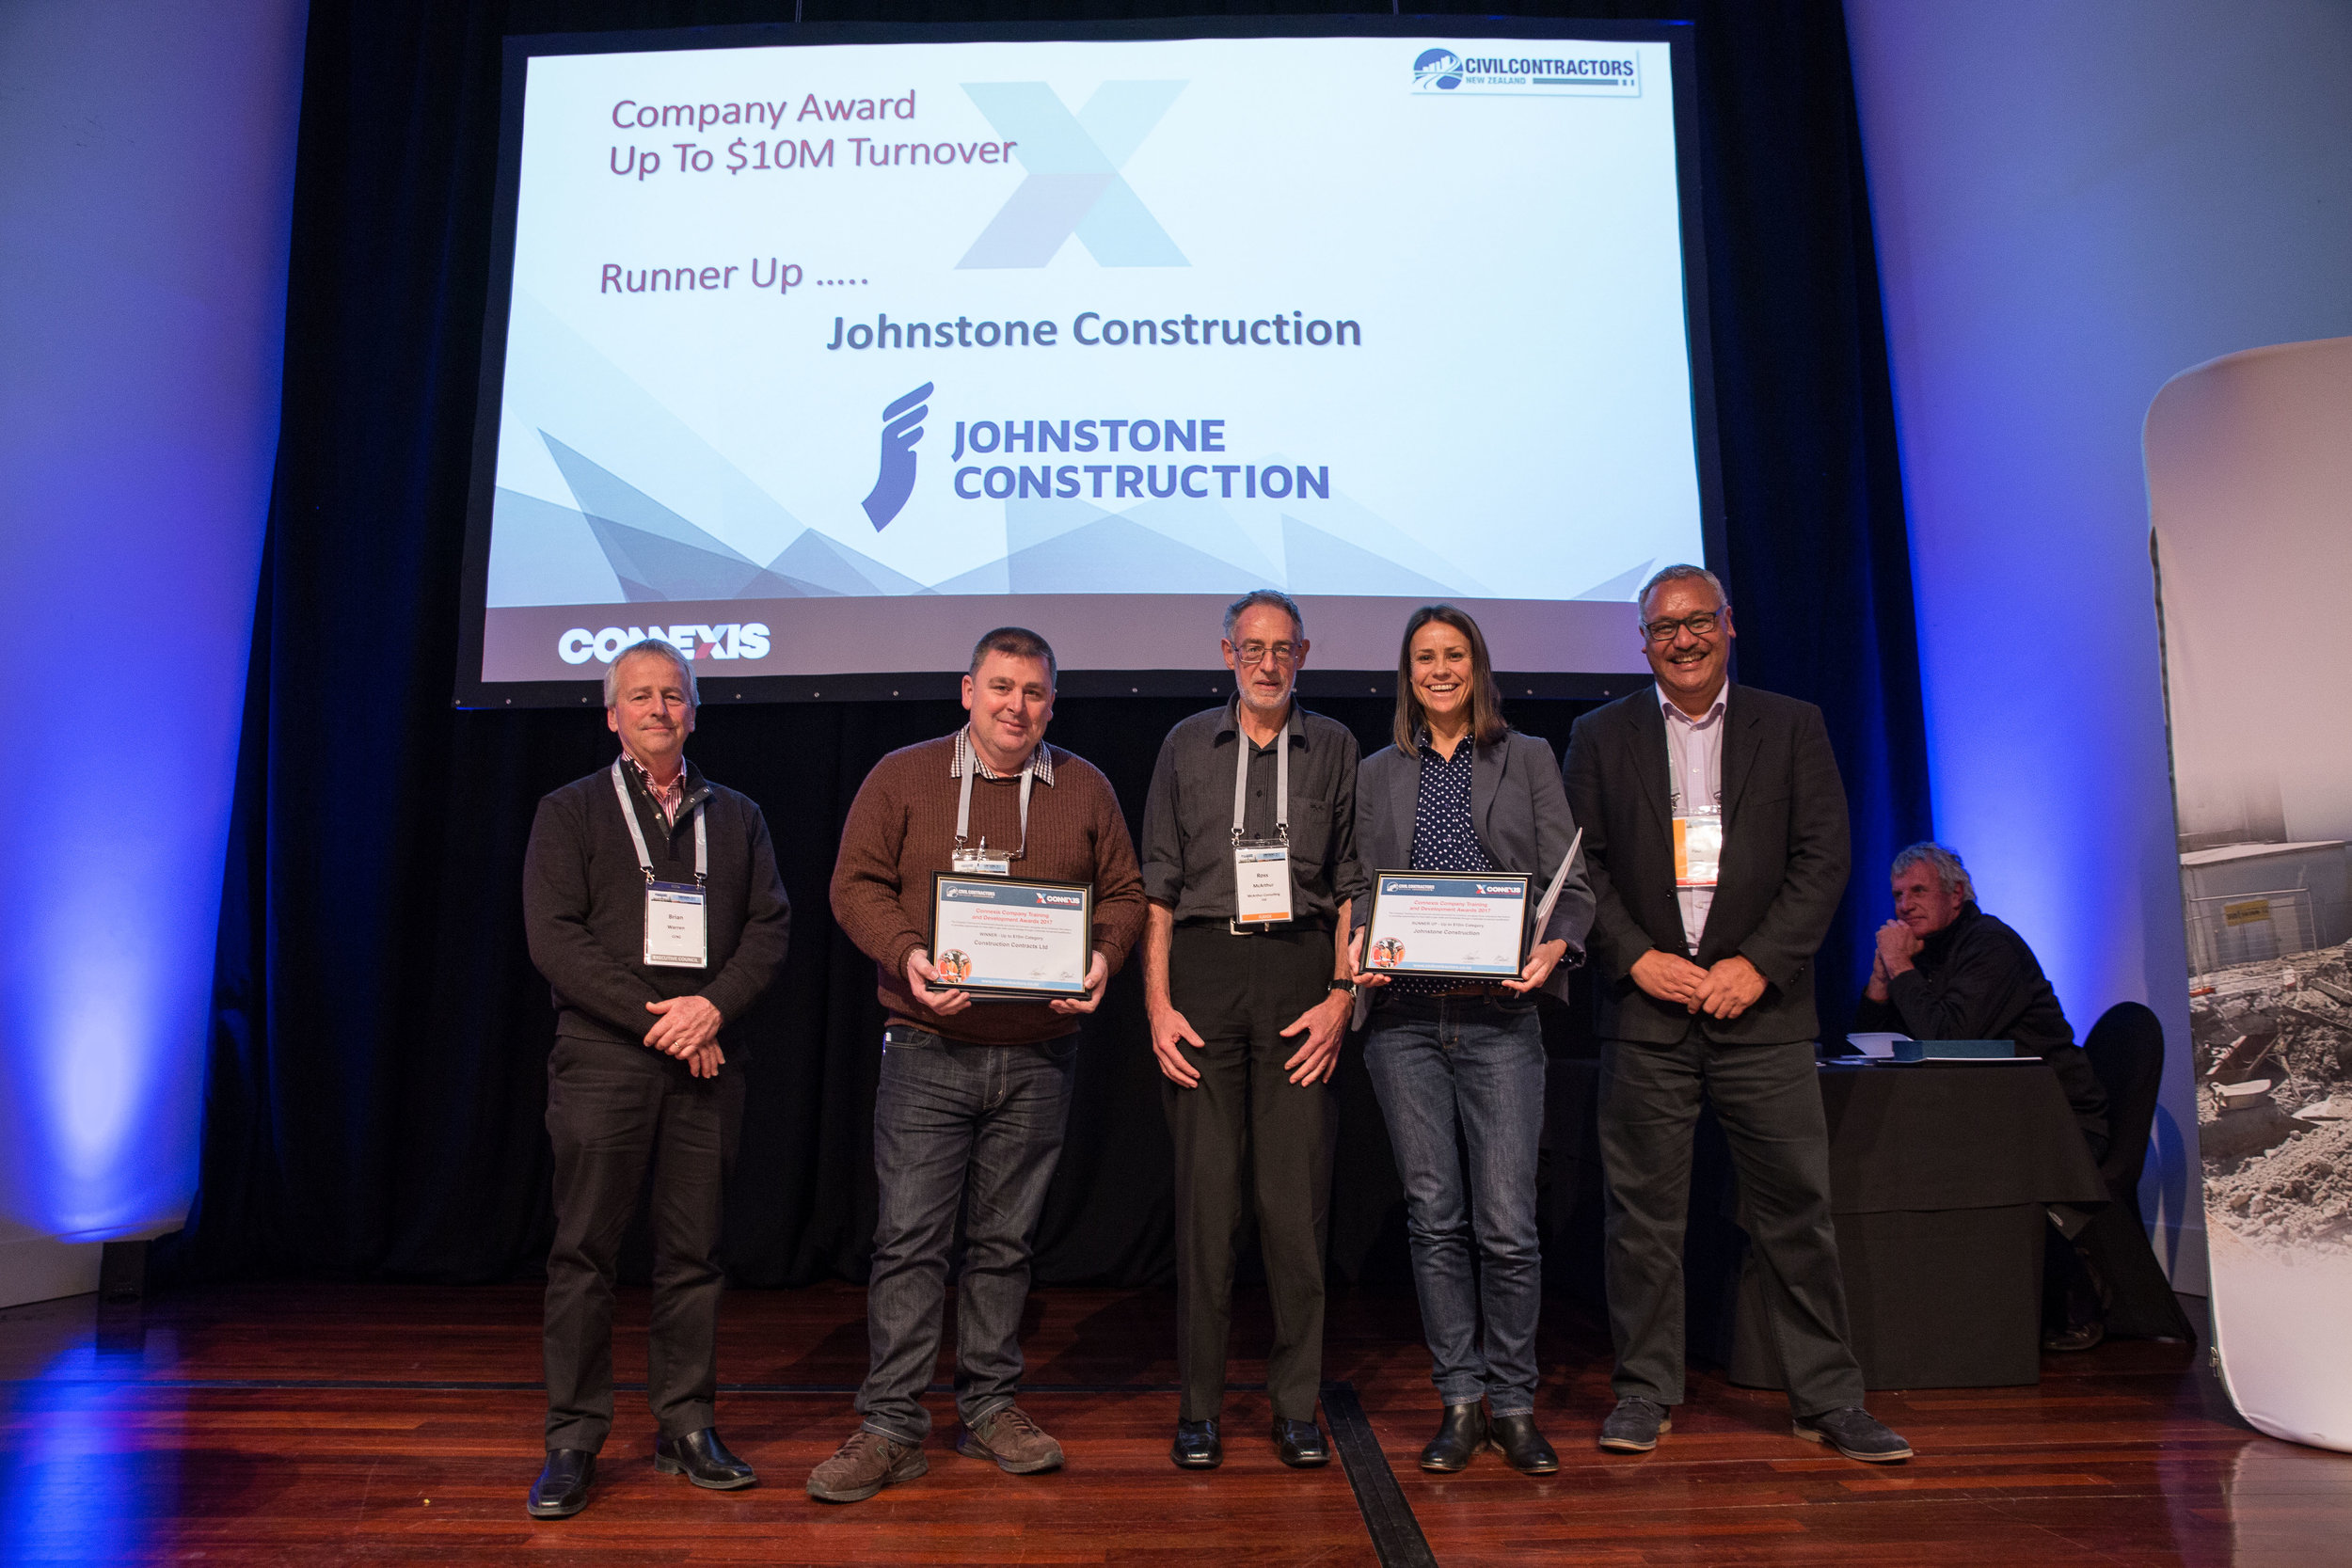 Johnstone Construction's Operations Manager Susy Pryde collects the 'Runner Up' certificate on behalf of Johnstone Construction at the 2017 CCNZ Awards